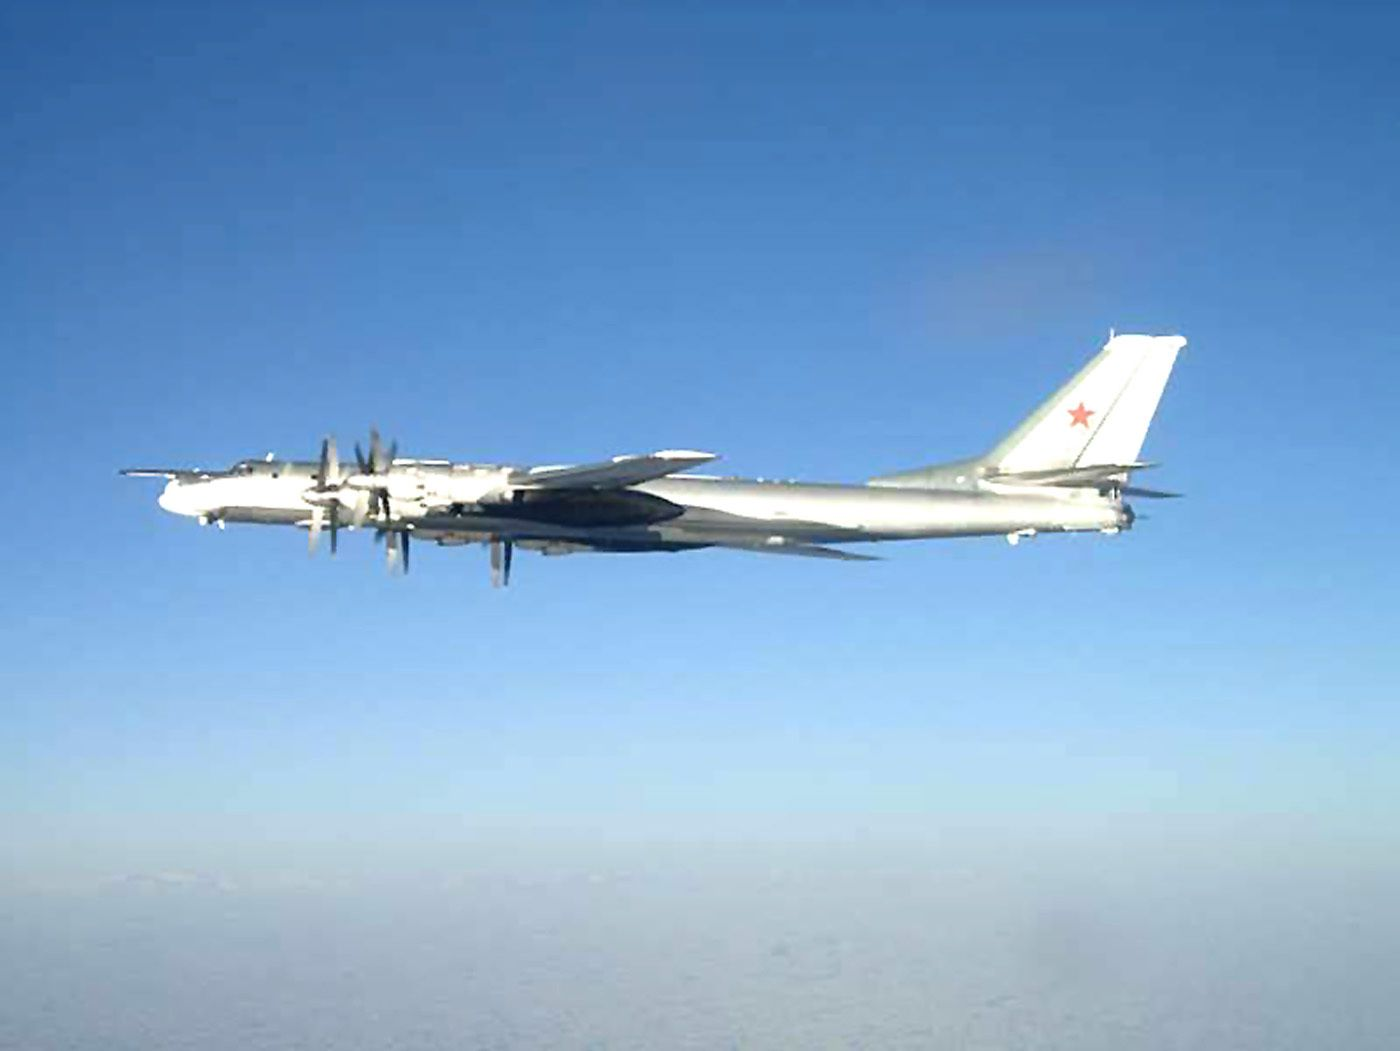 © US DoD - Interception d'un Tu-95 Bear par des F/A-18 Hornet de l'US Navy.